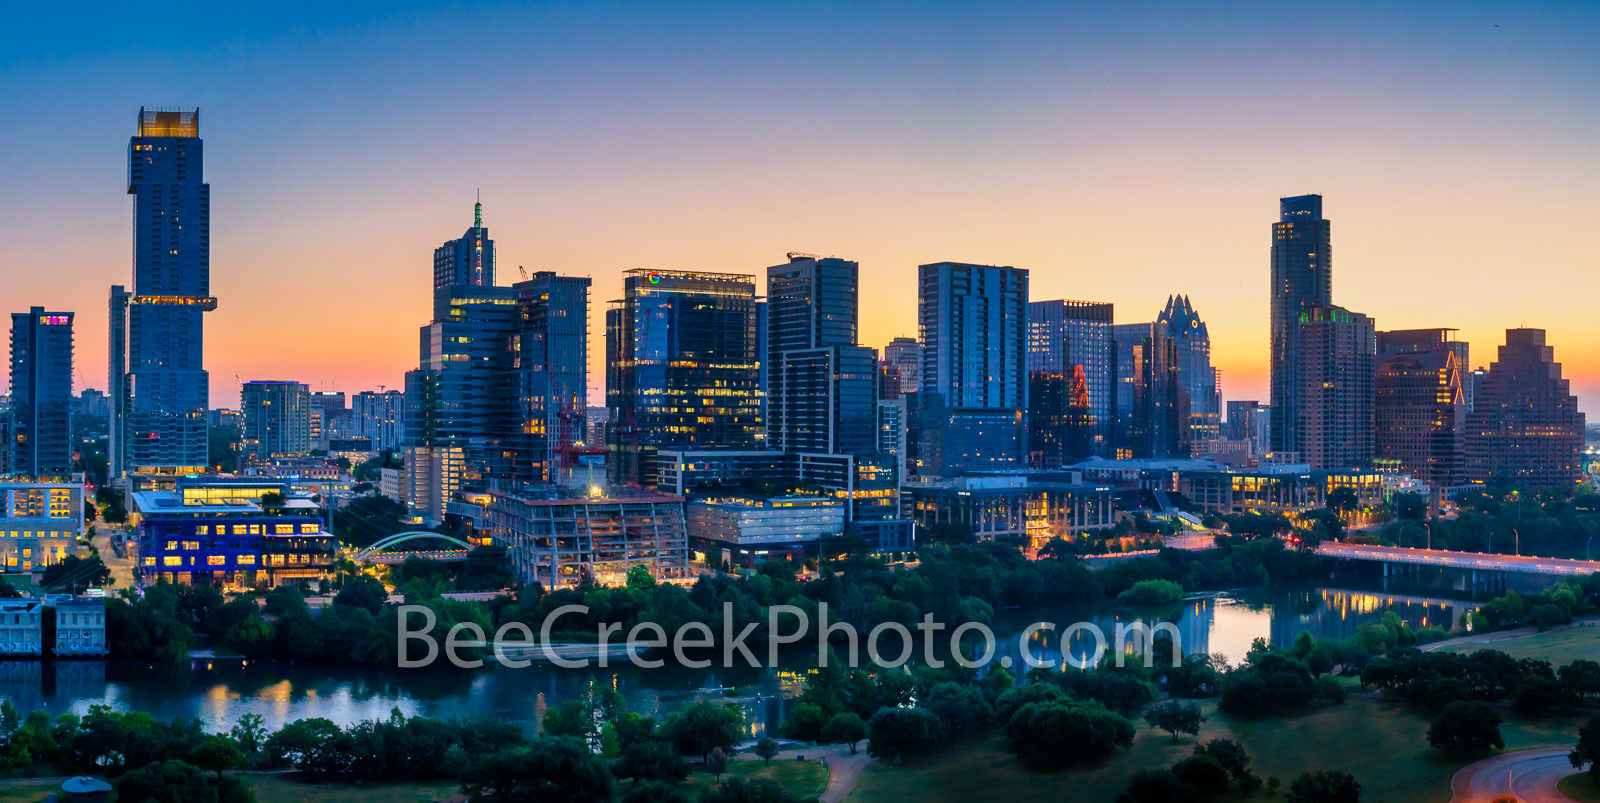 austin skyline, texas, sunrise, texas capitol, downtown austin, austin, lady bird lake, city of austin, austin texas, austin tx, austin pics, pano, panorama, austin downtown, architecture, sunrise,